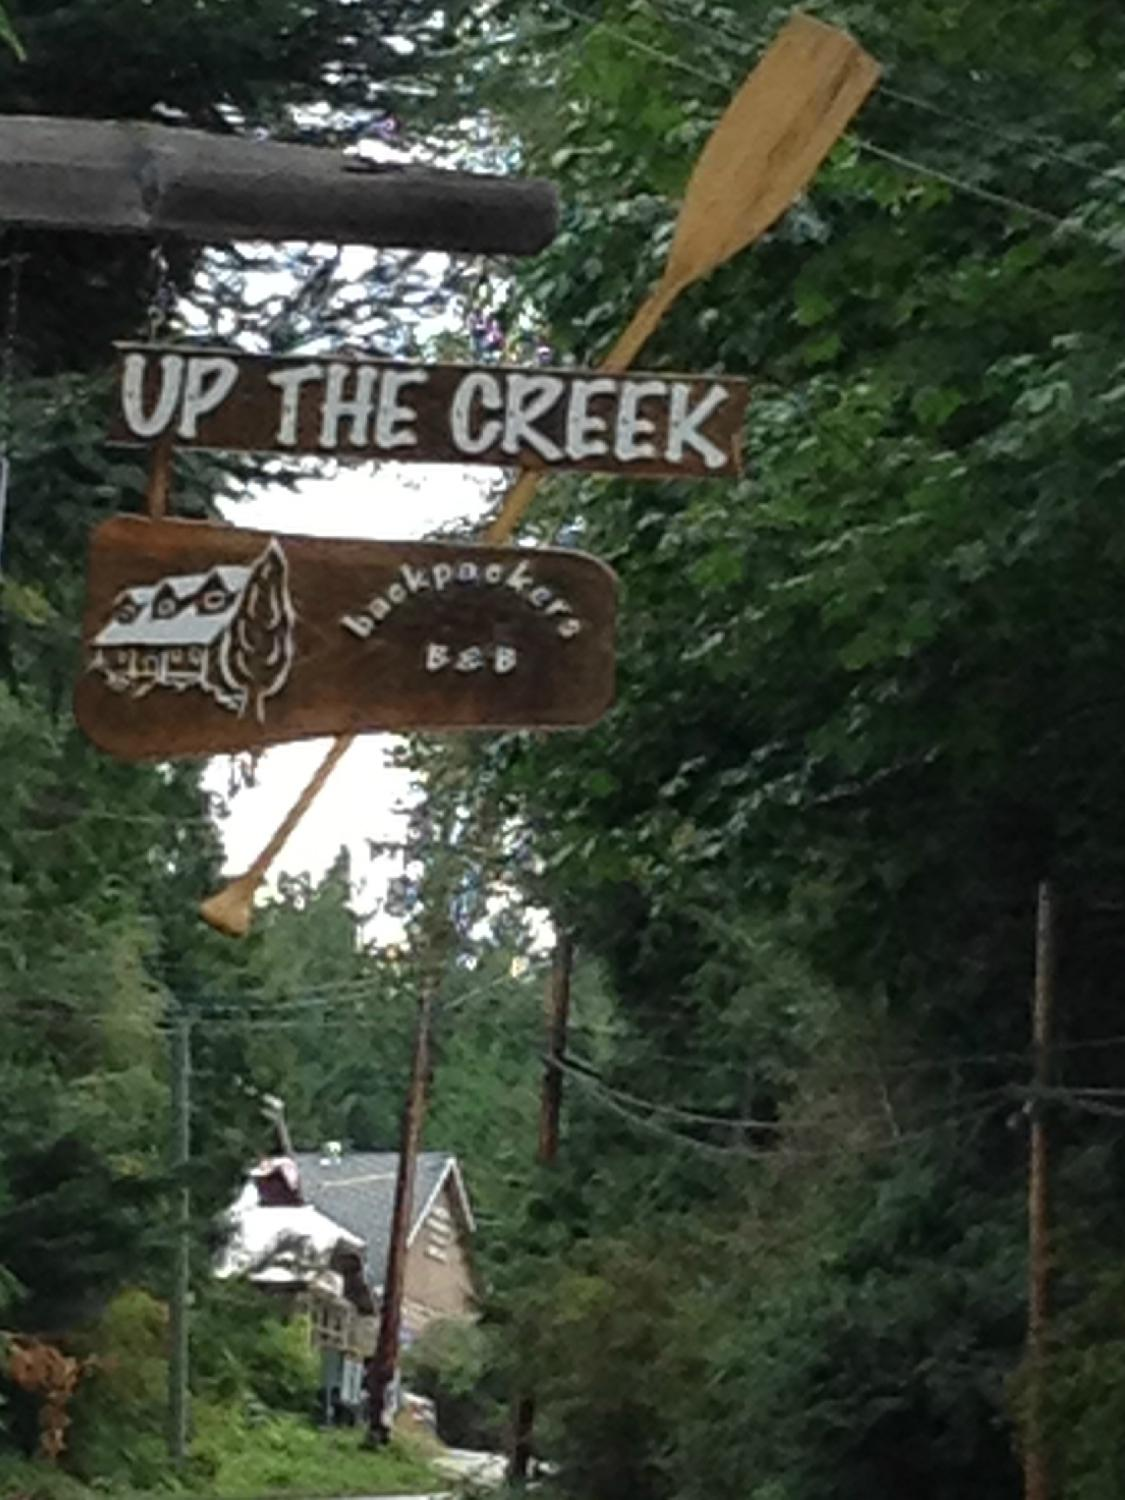 Up The Creek Backpackers B&B